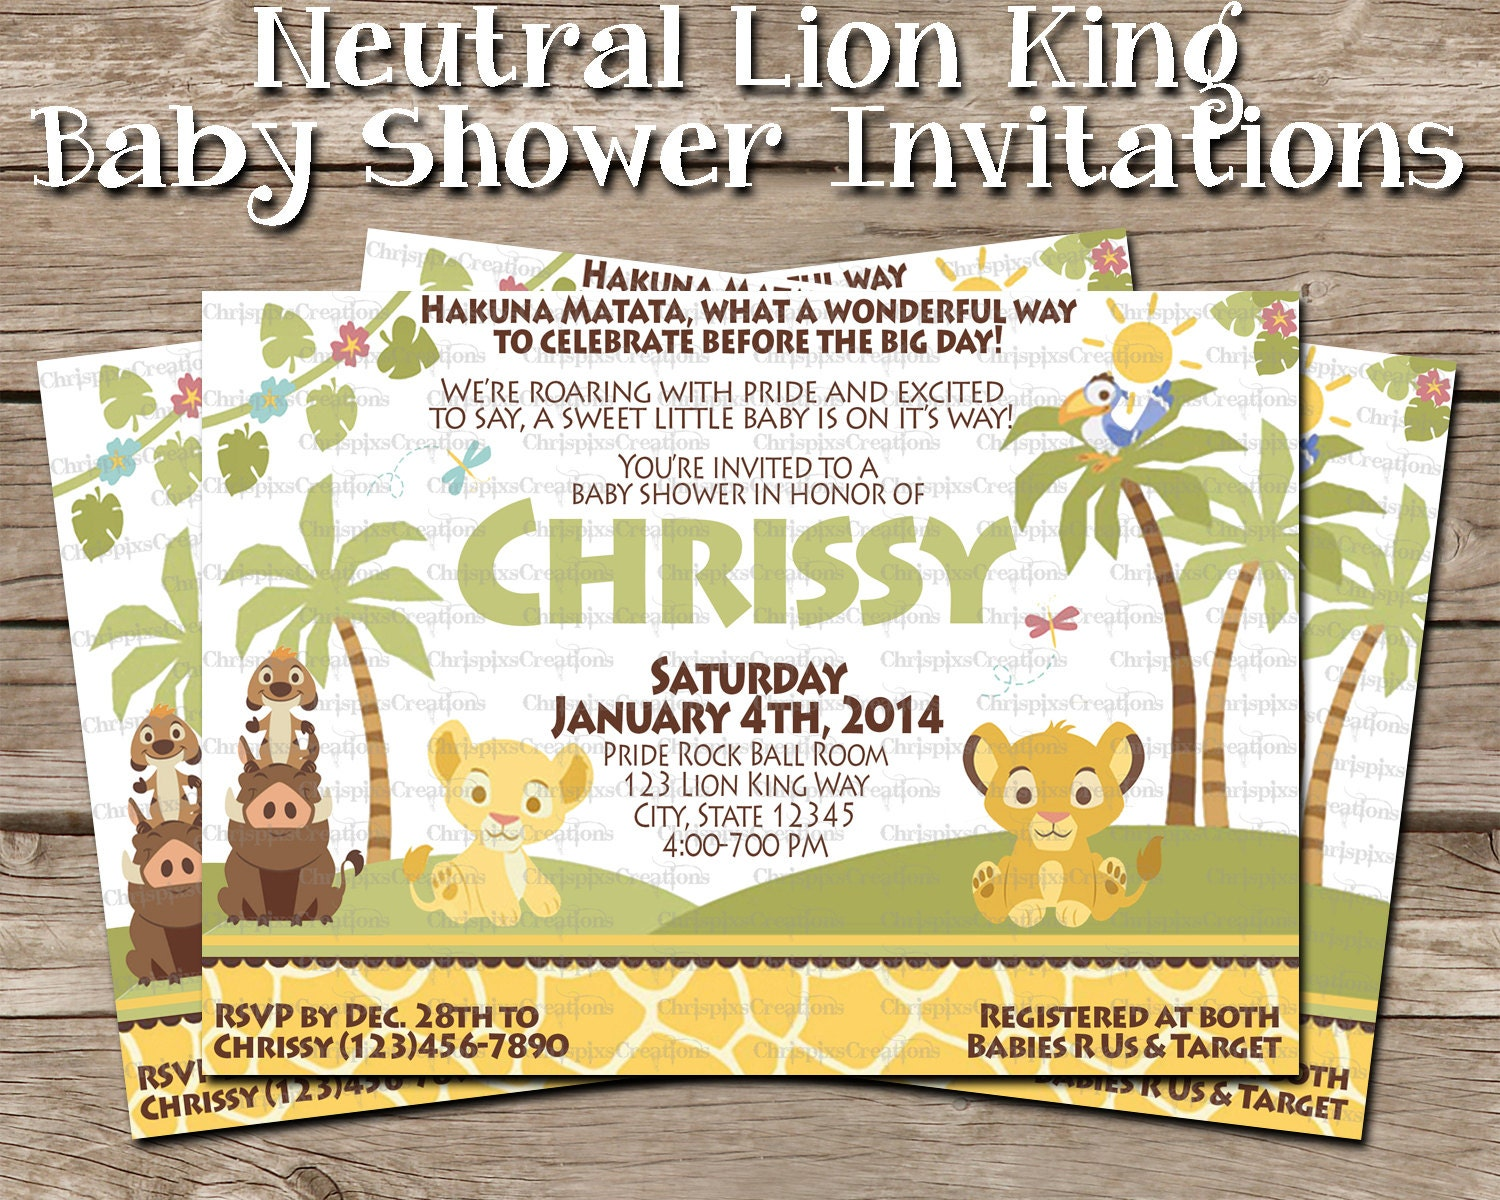 neutral lion king baby shower invitation by chrispixscreations